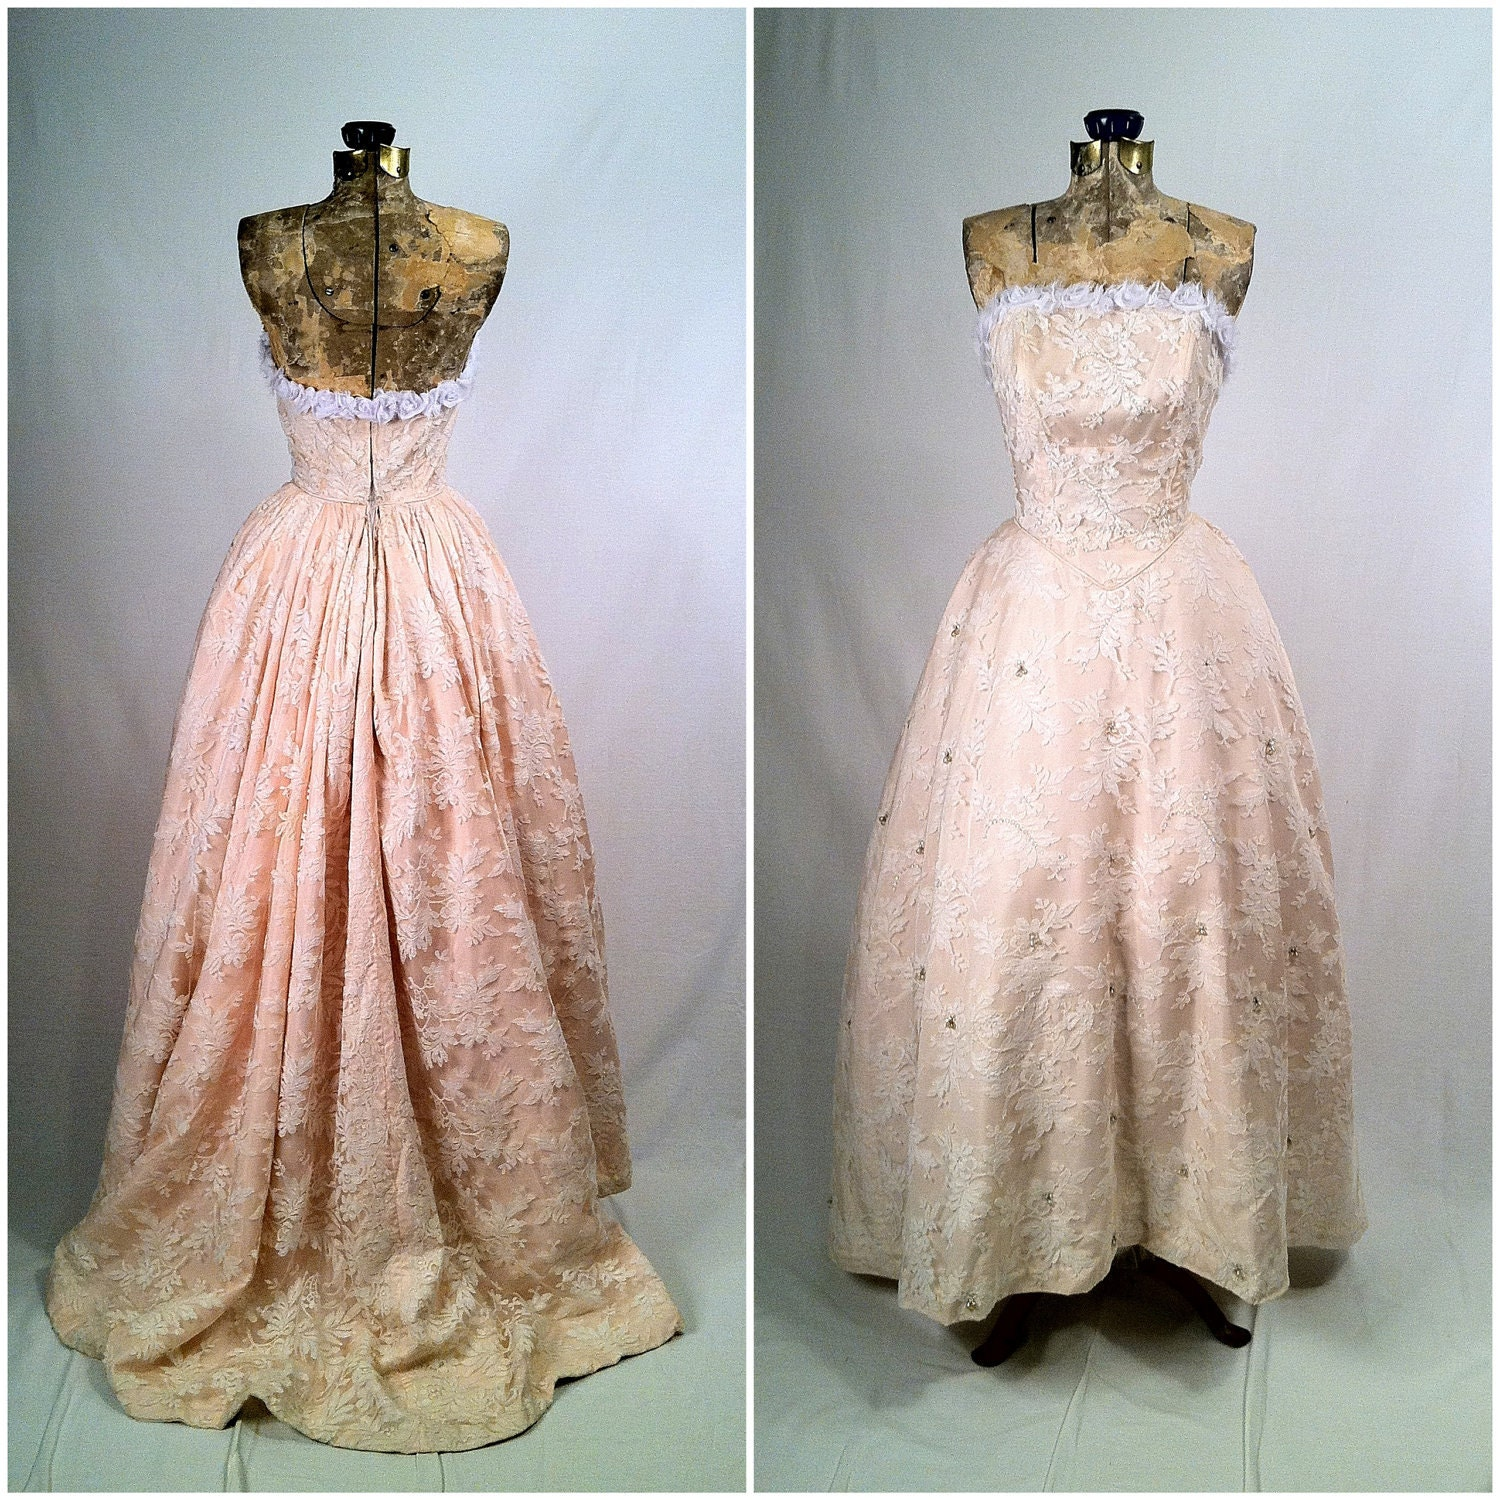 Vintage Wedding Dresses Toronto: Items Similar To Vintage 1950s White Lace And Pink Gown